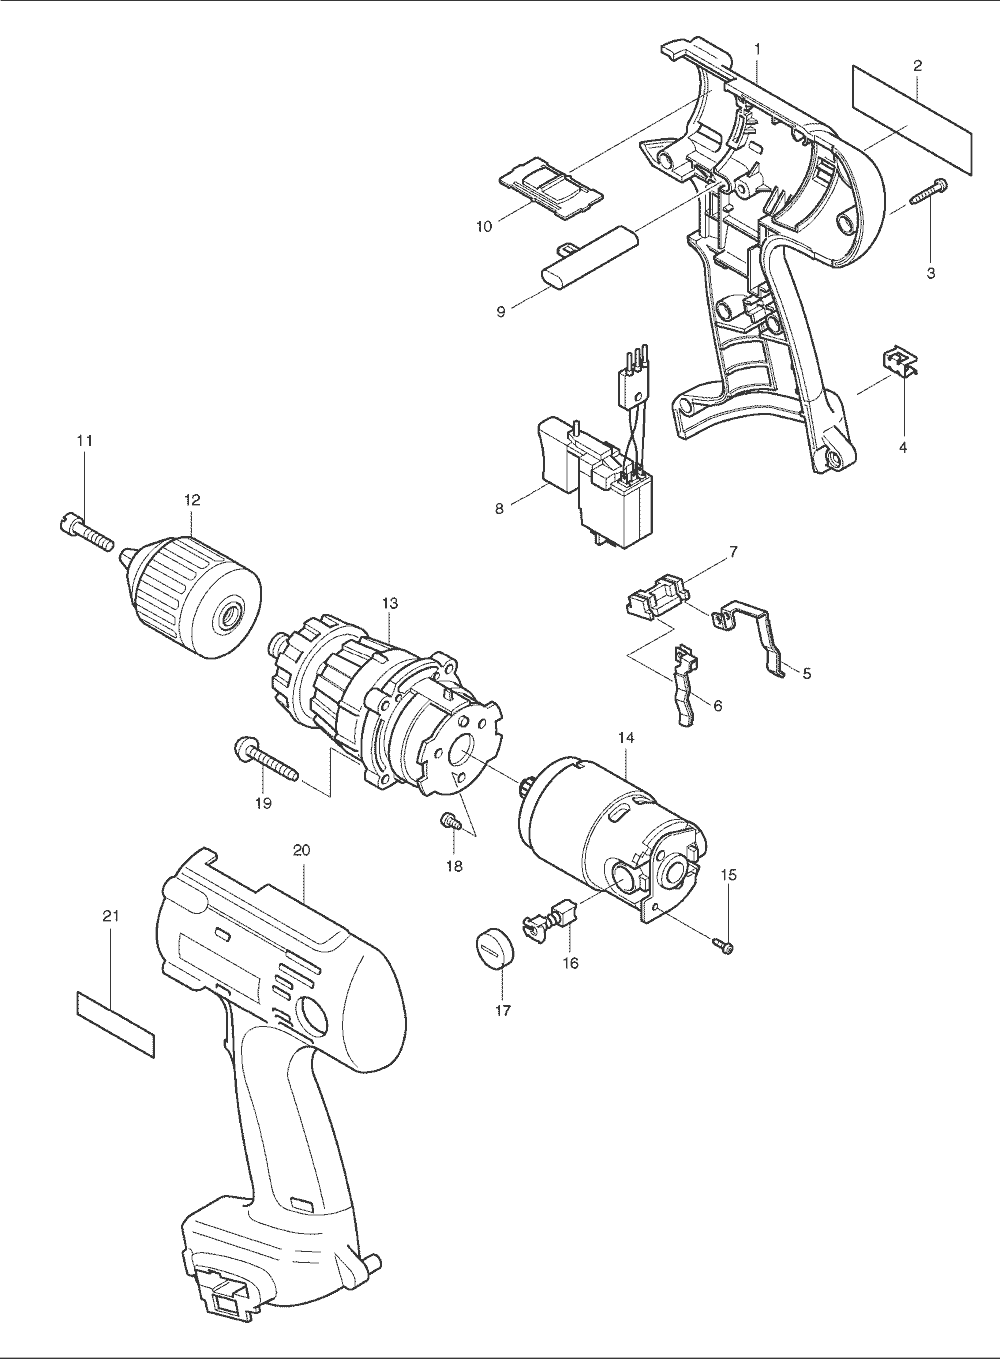 Astounding makita wiring diagrams gallery best image diagram amazing makita drill wiring diagram pictures best image